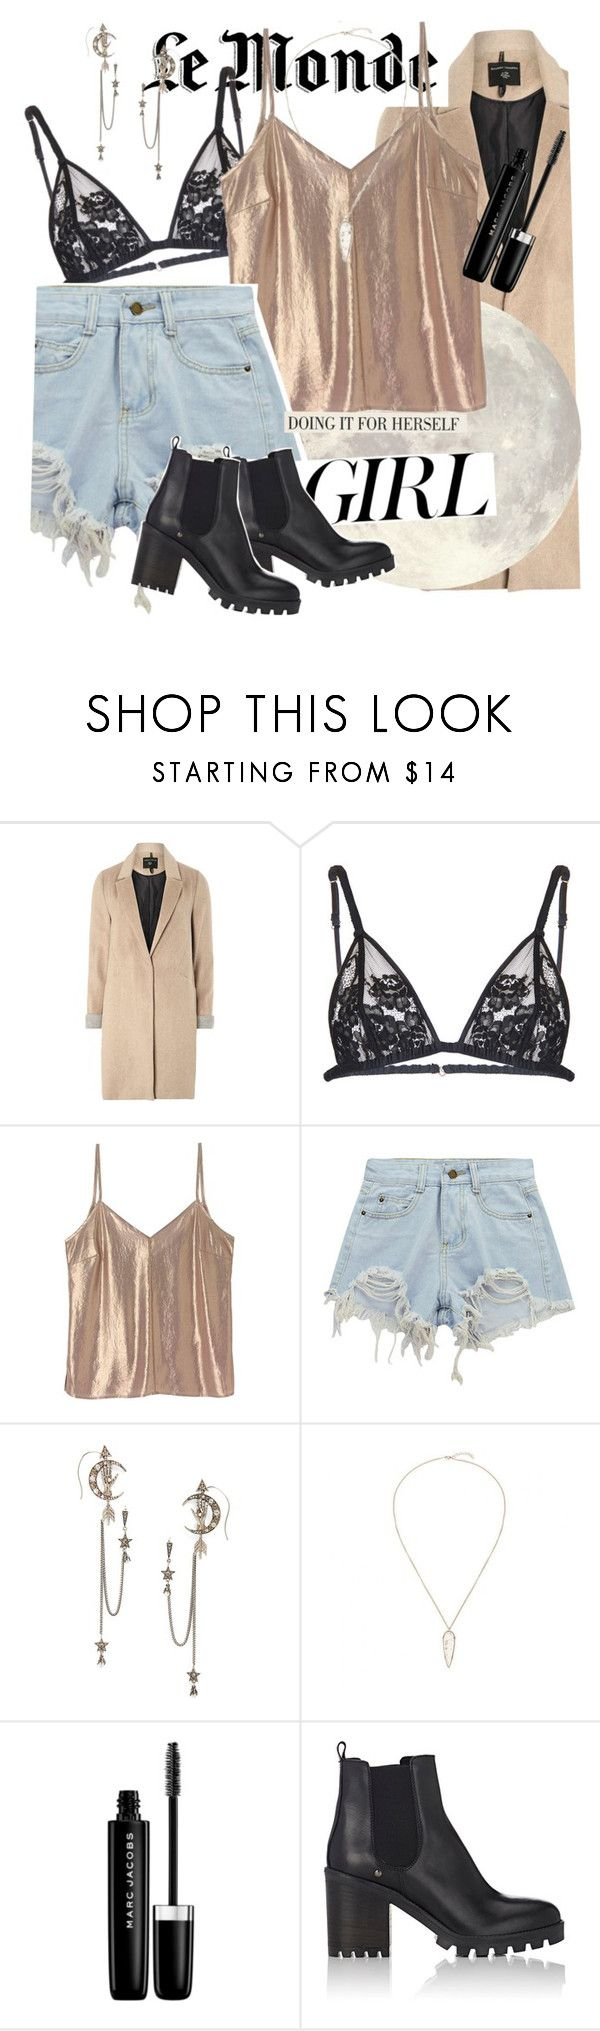 """Living a life I will remember"" by mondaydreamer ❤ liked on Polyvore featuring mel, A Day in a Life, Chicnova Fashion, Alexander McQueen, Murphy, Marc Jacobs and Barneys New York"